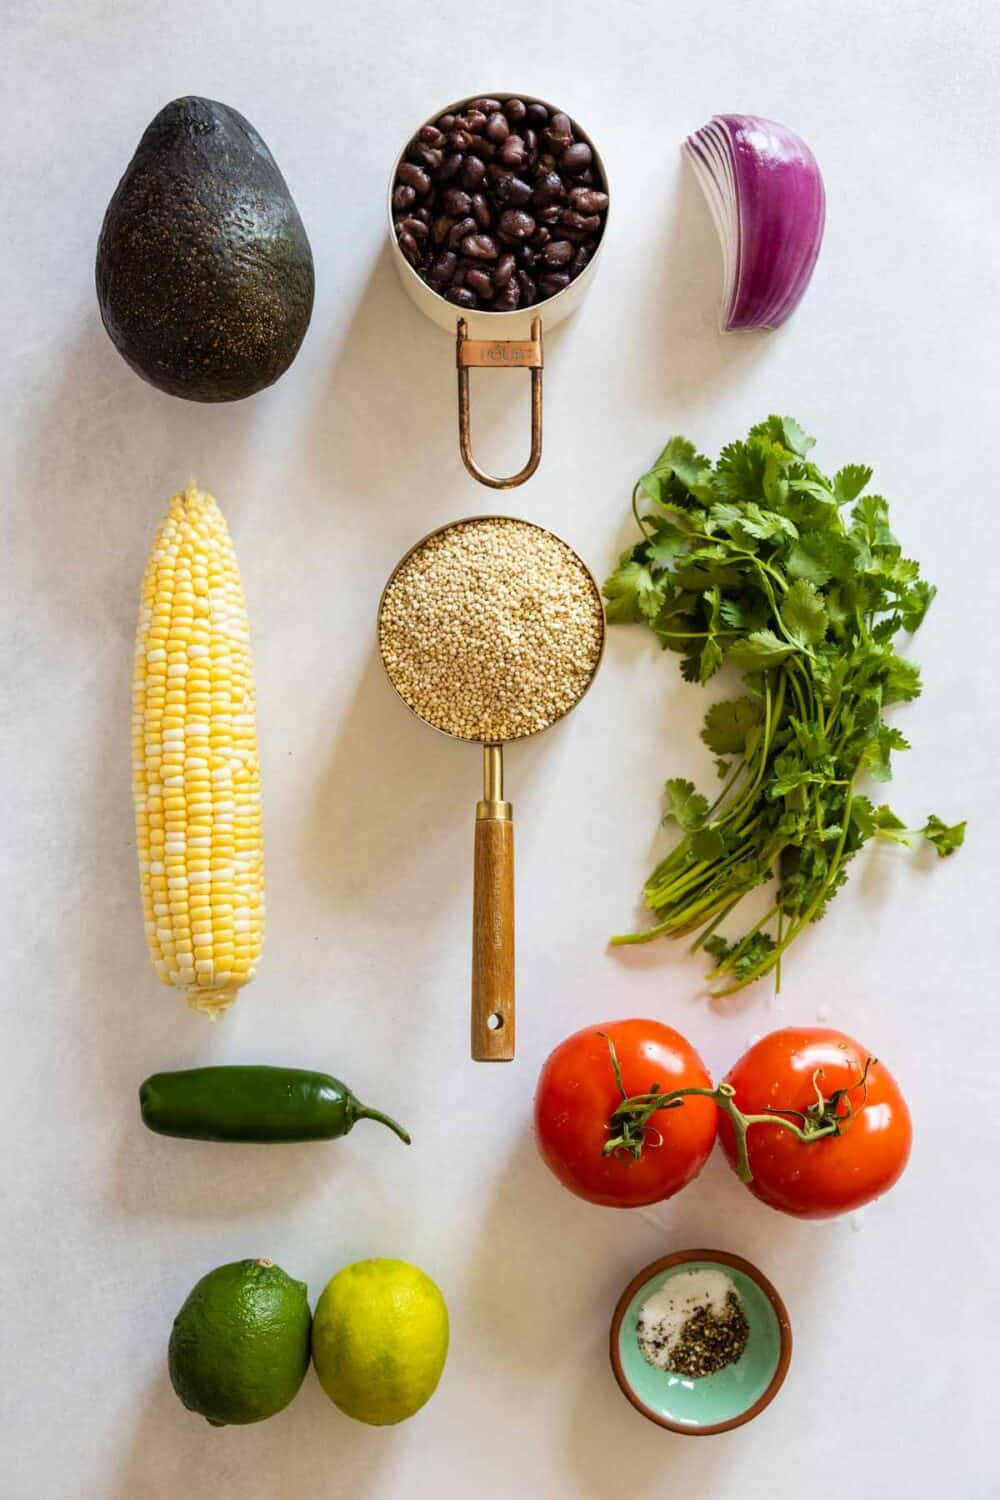 All ingredients for Mexican Quinoa Salad laid out on a kitchen counter.